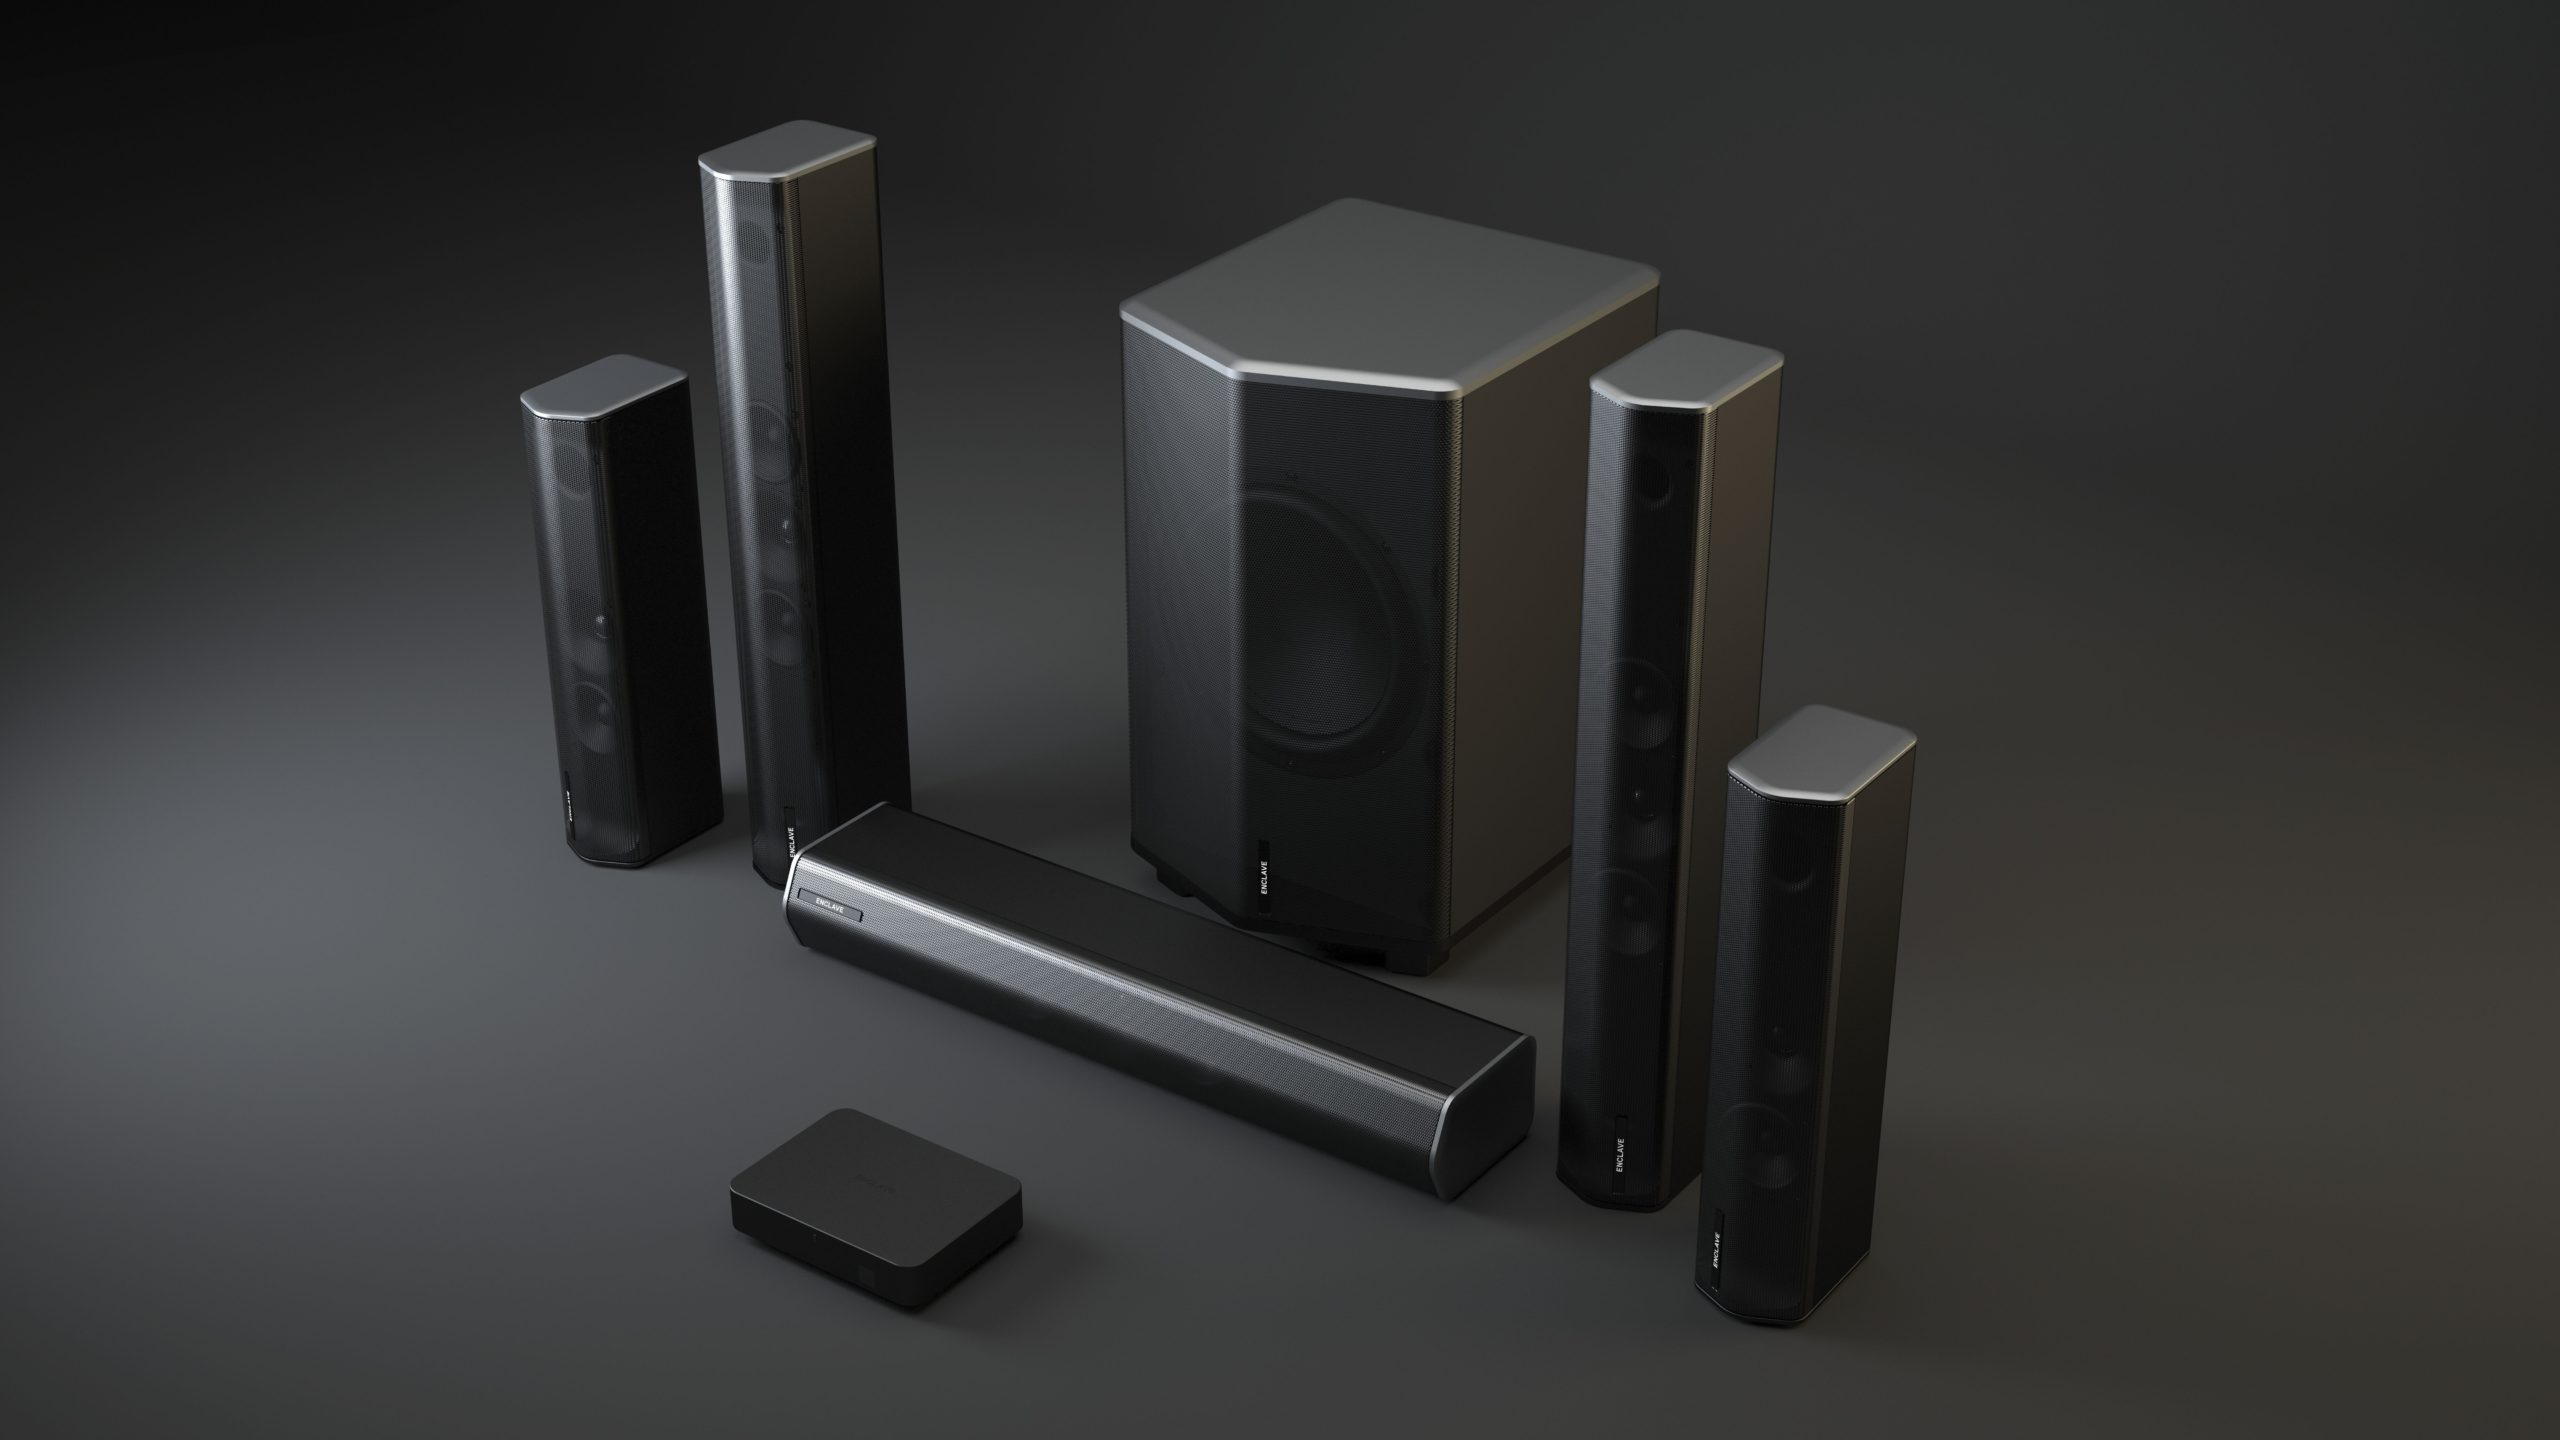 enclave-audio-cinehome-hd-draadloos-audio-home-theater-systeem